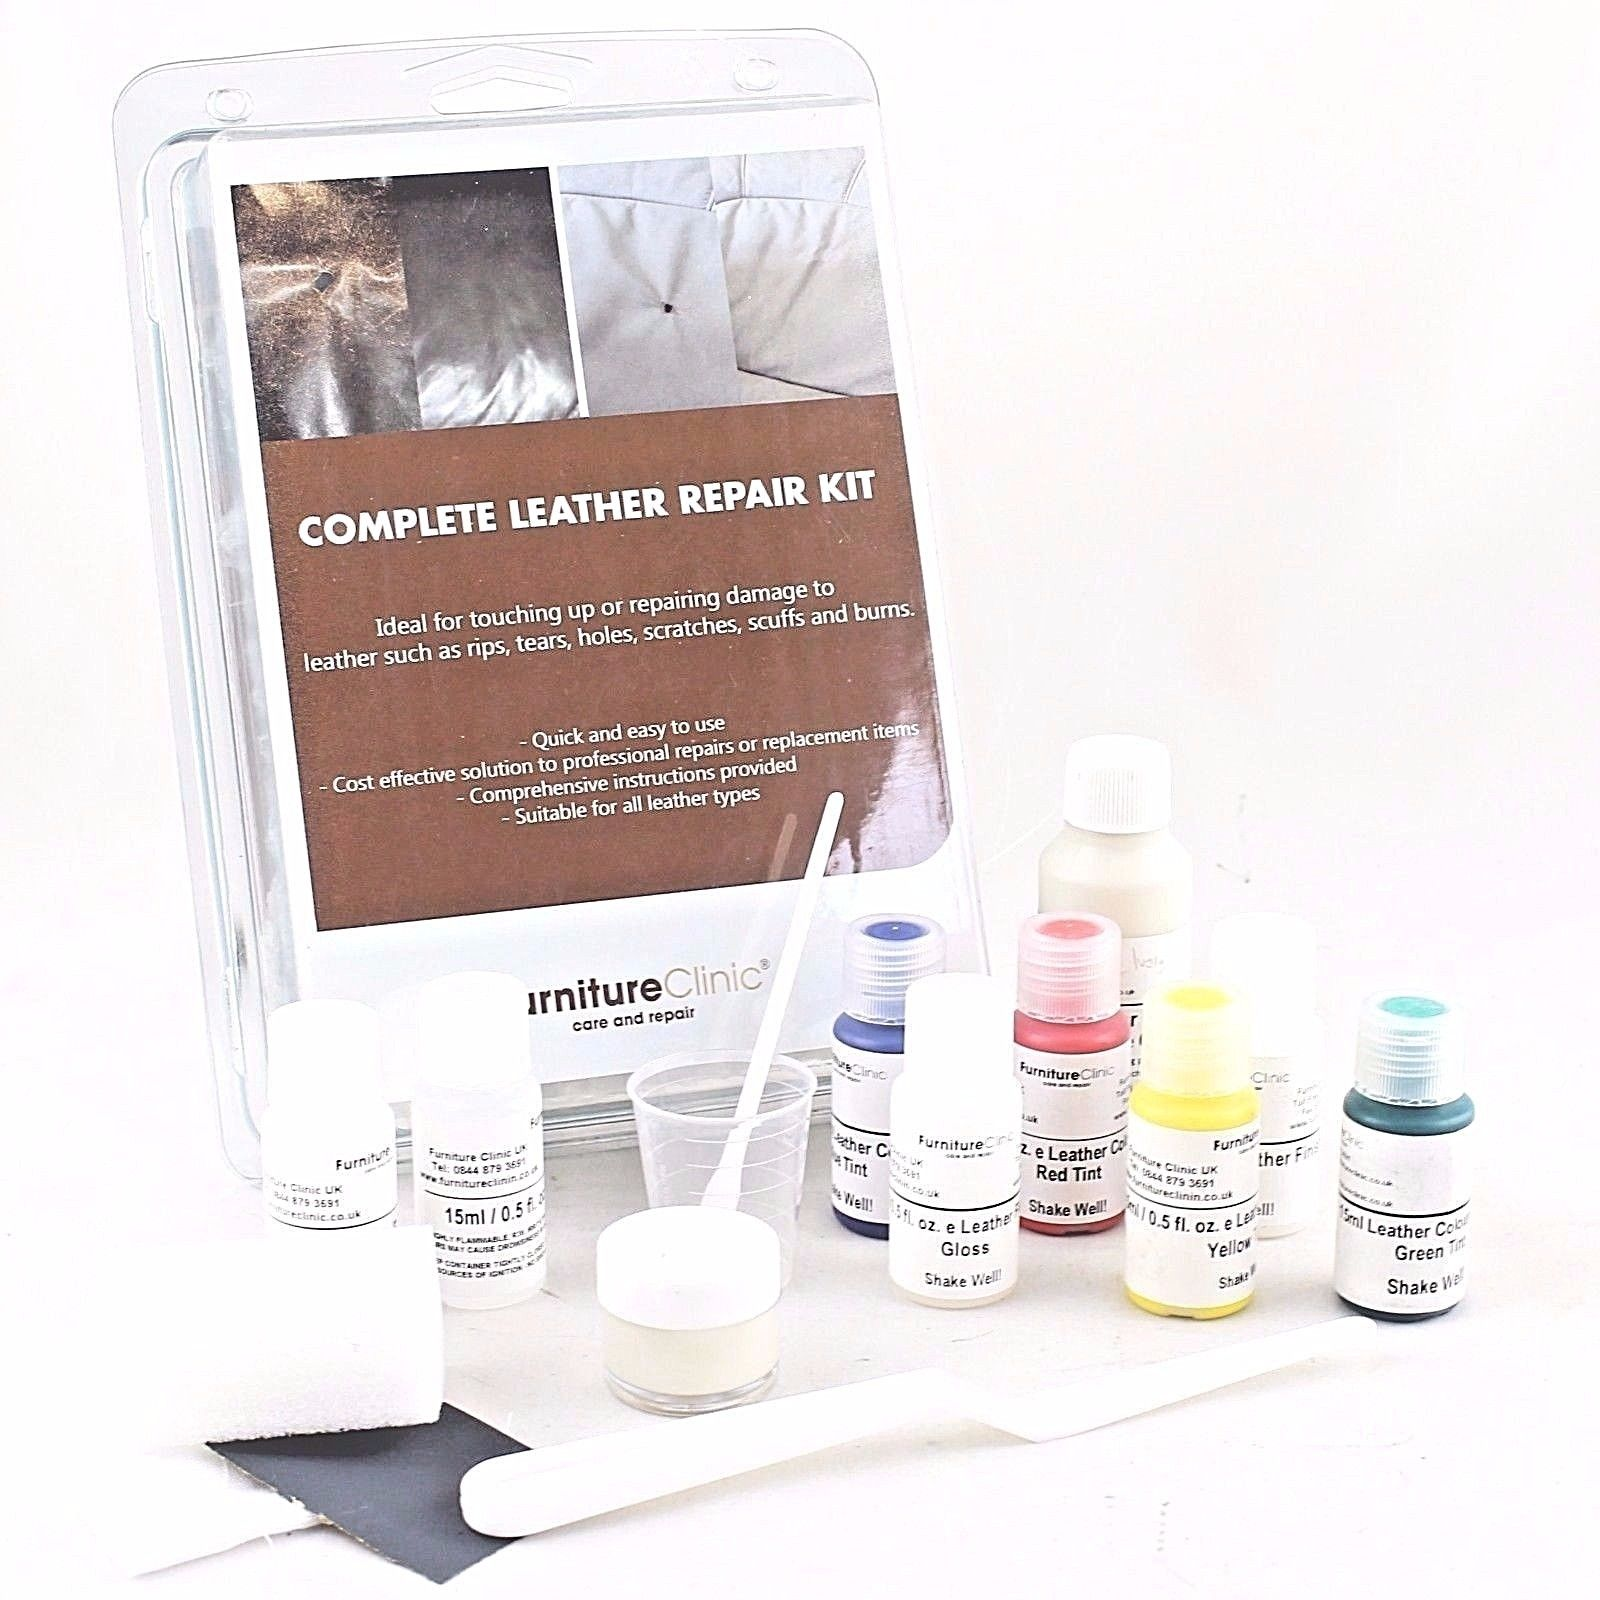 .Complete Leather Repair Kit